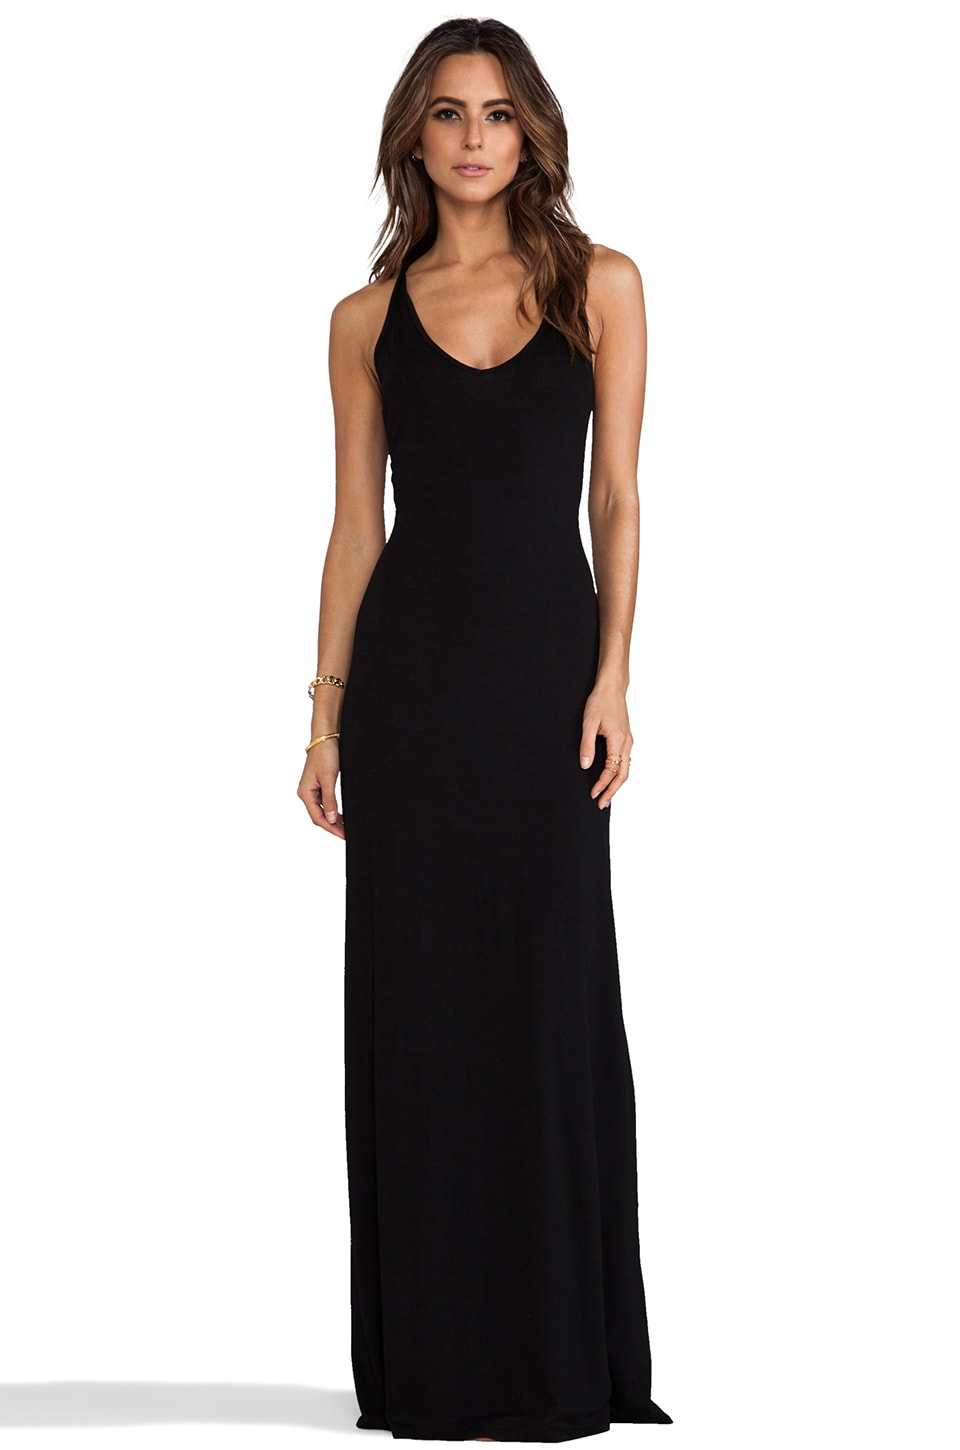 Feel the Piece V Neck Maxi Dress in Black